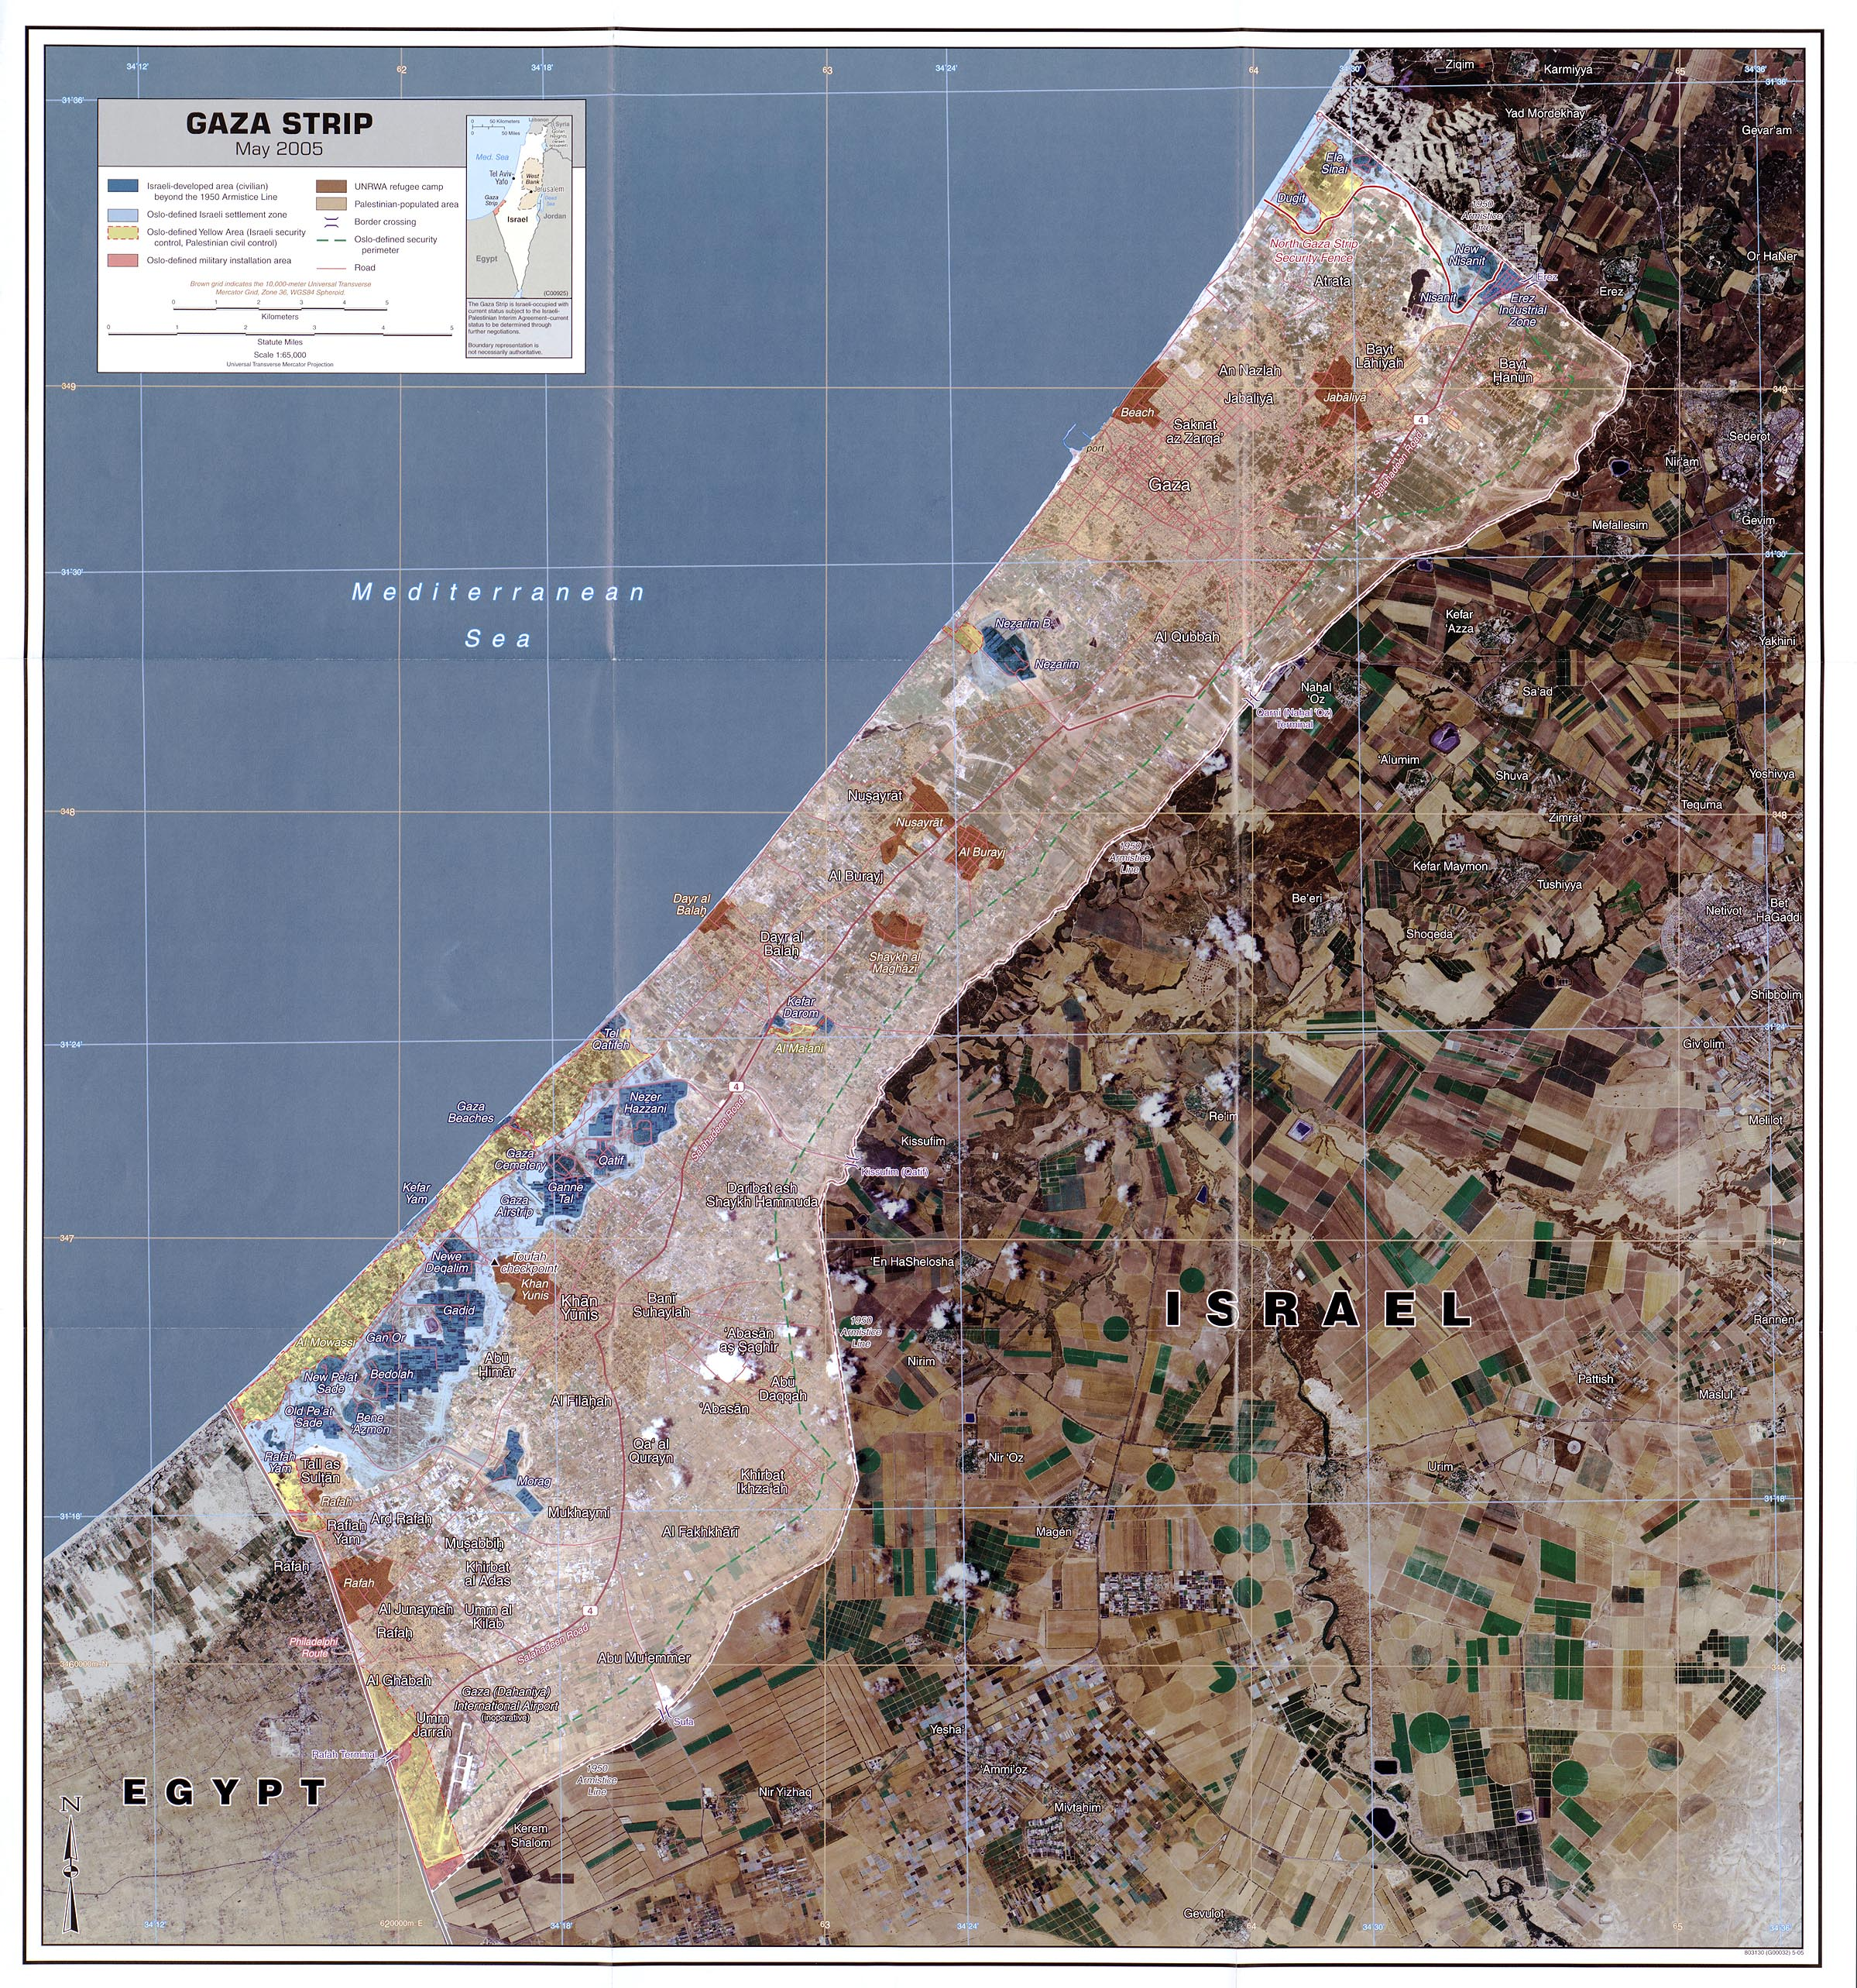 Gaza_strip_may_2005.jpg